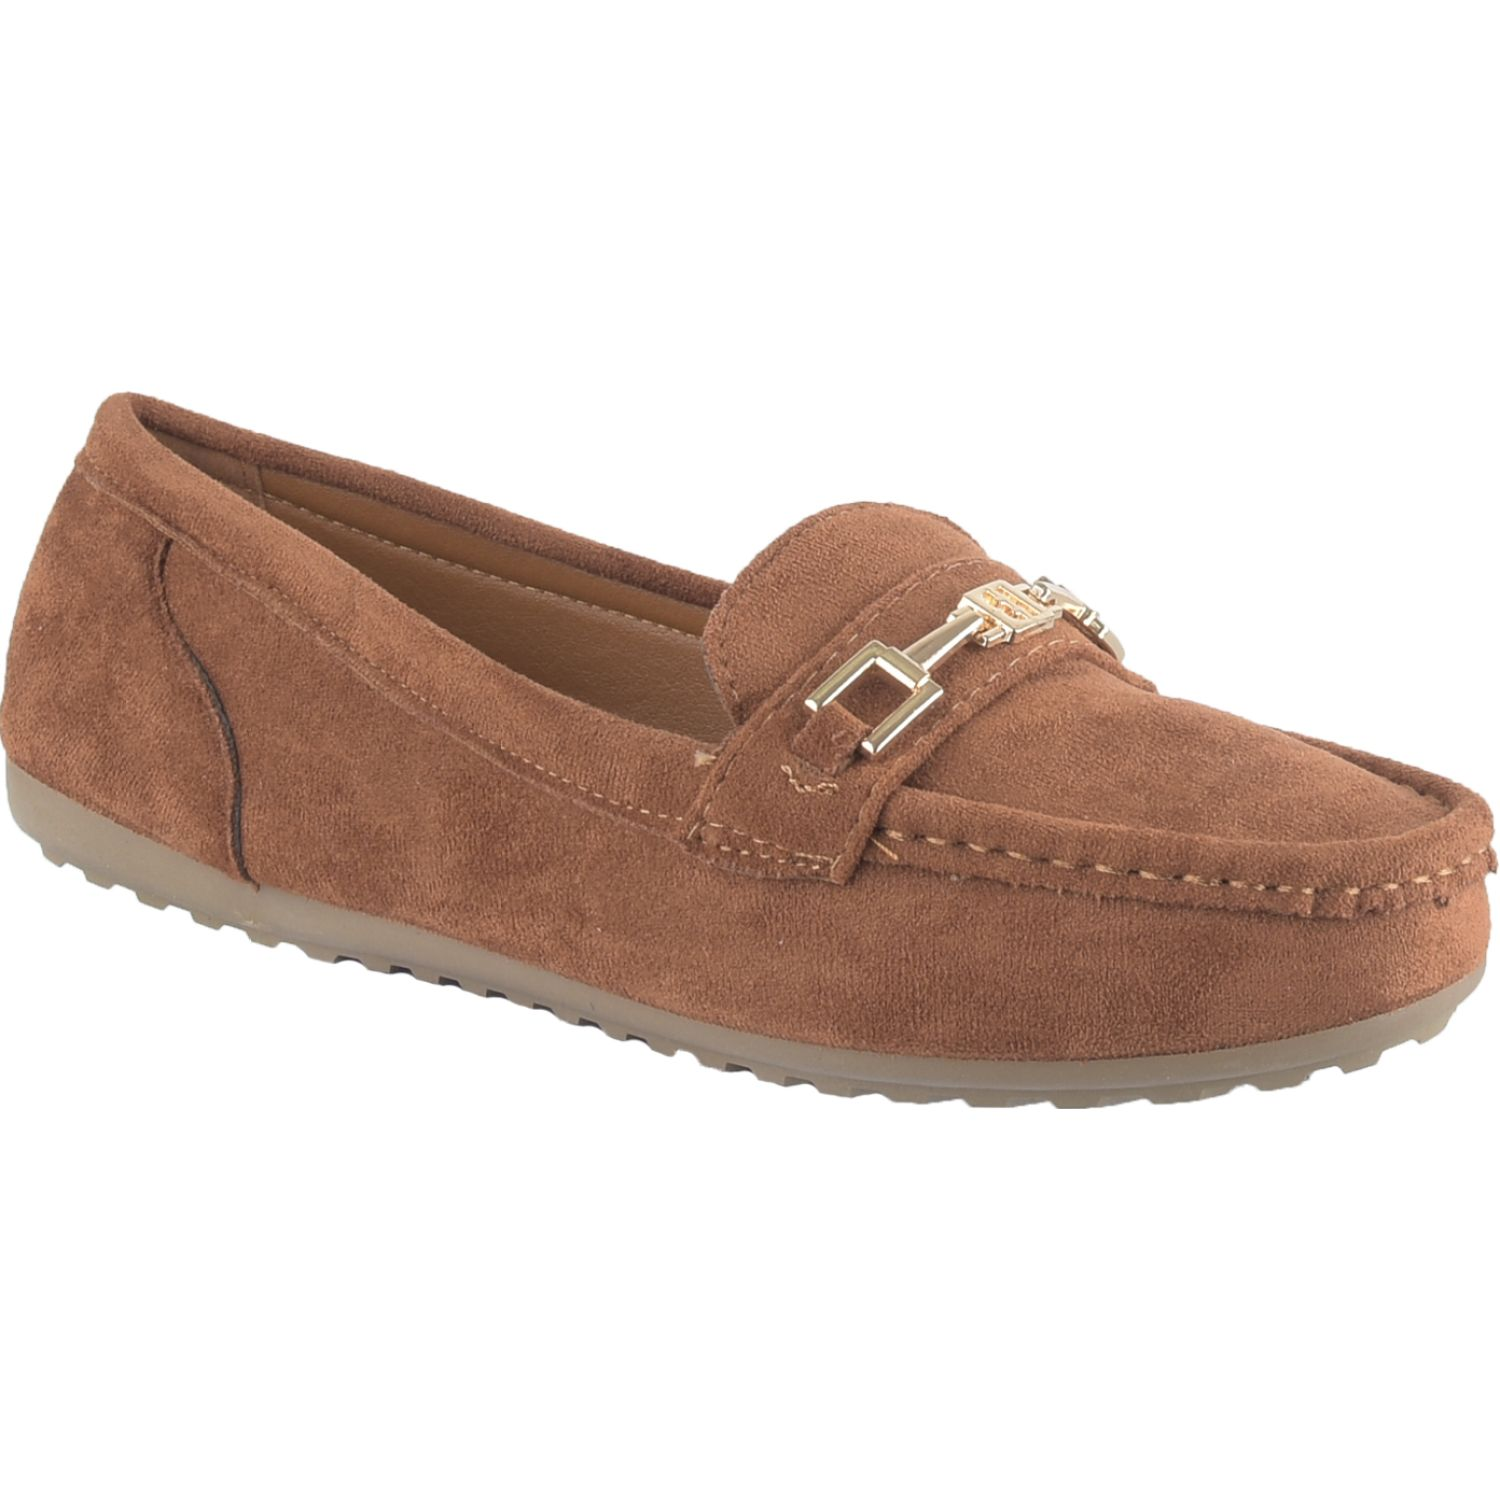 Platanitos M 5887 Marron Mocasines y Slip-Ons